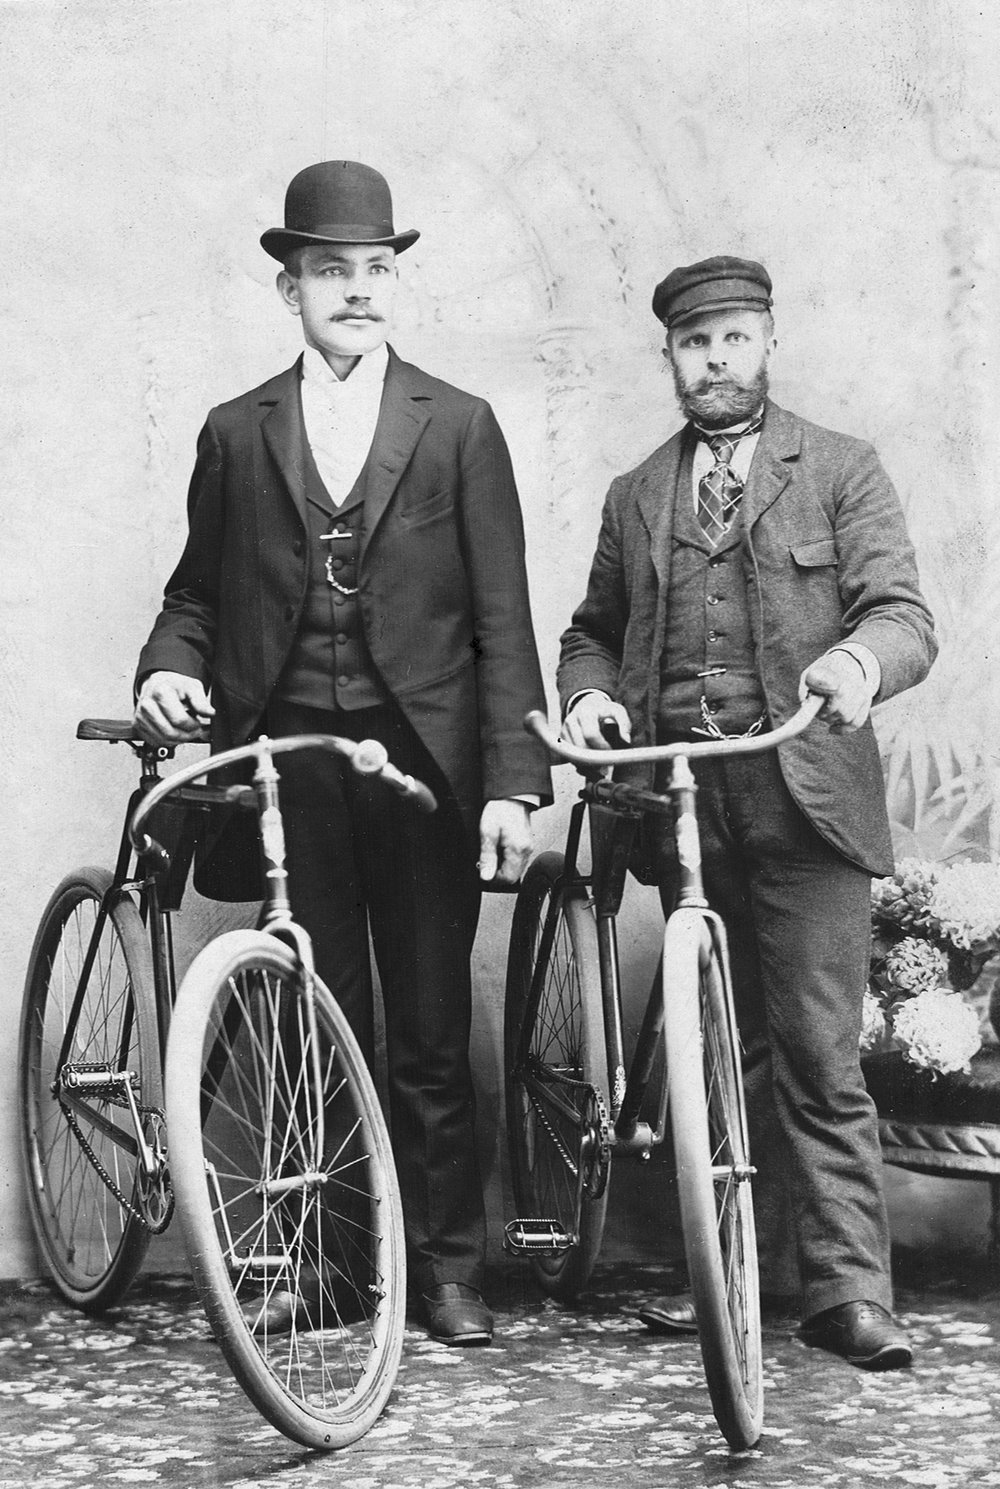 Alexander Cresent and Charleston Higginbottom of the United States Bicycle Army